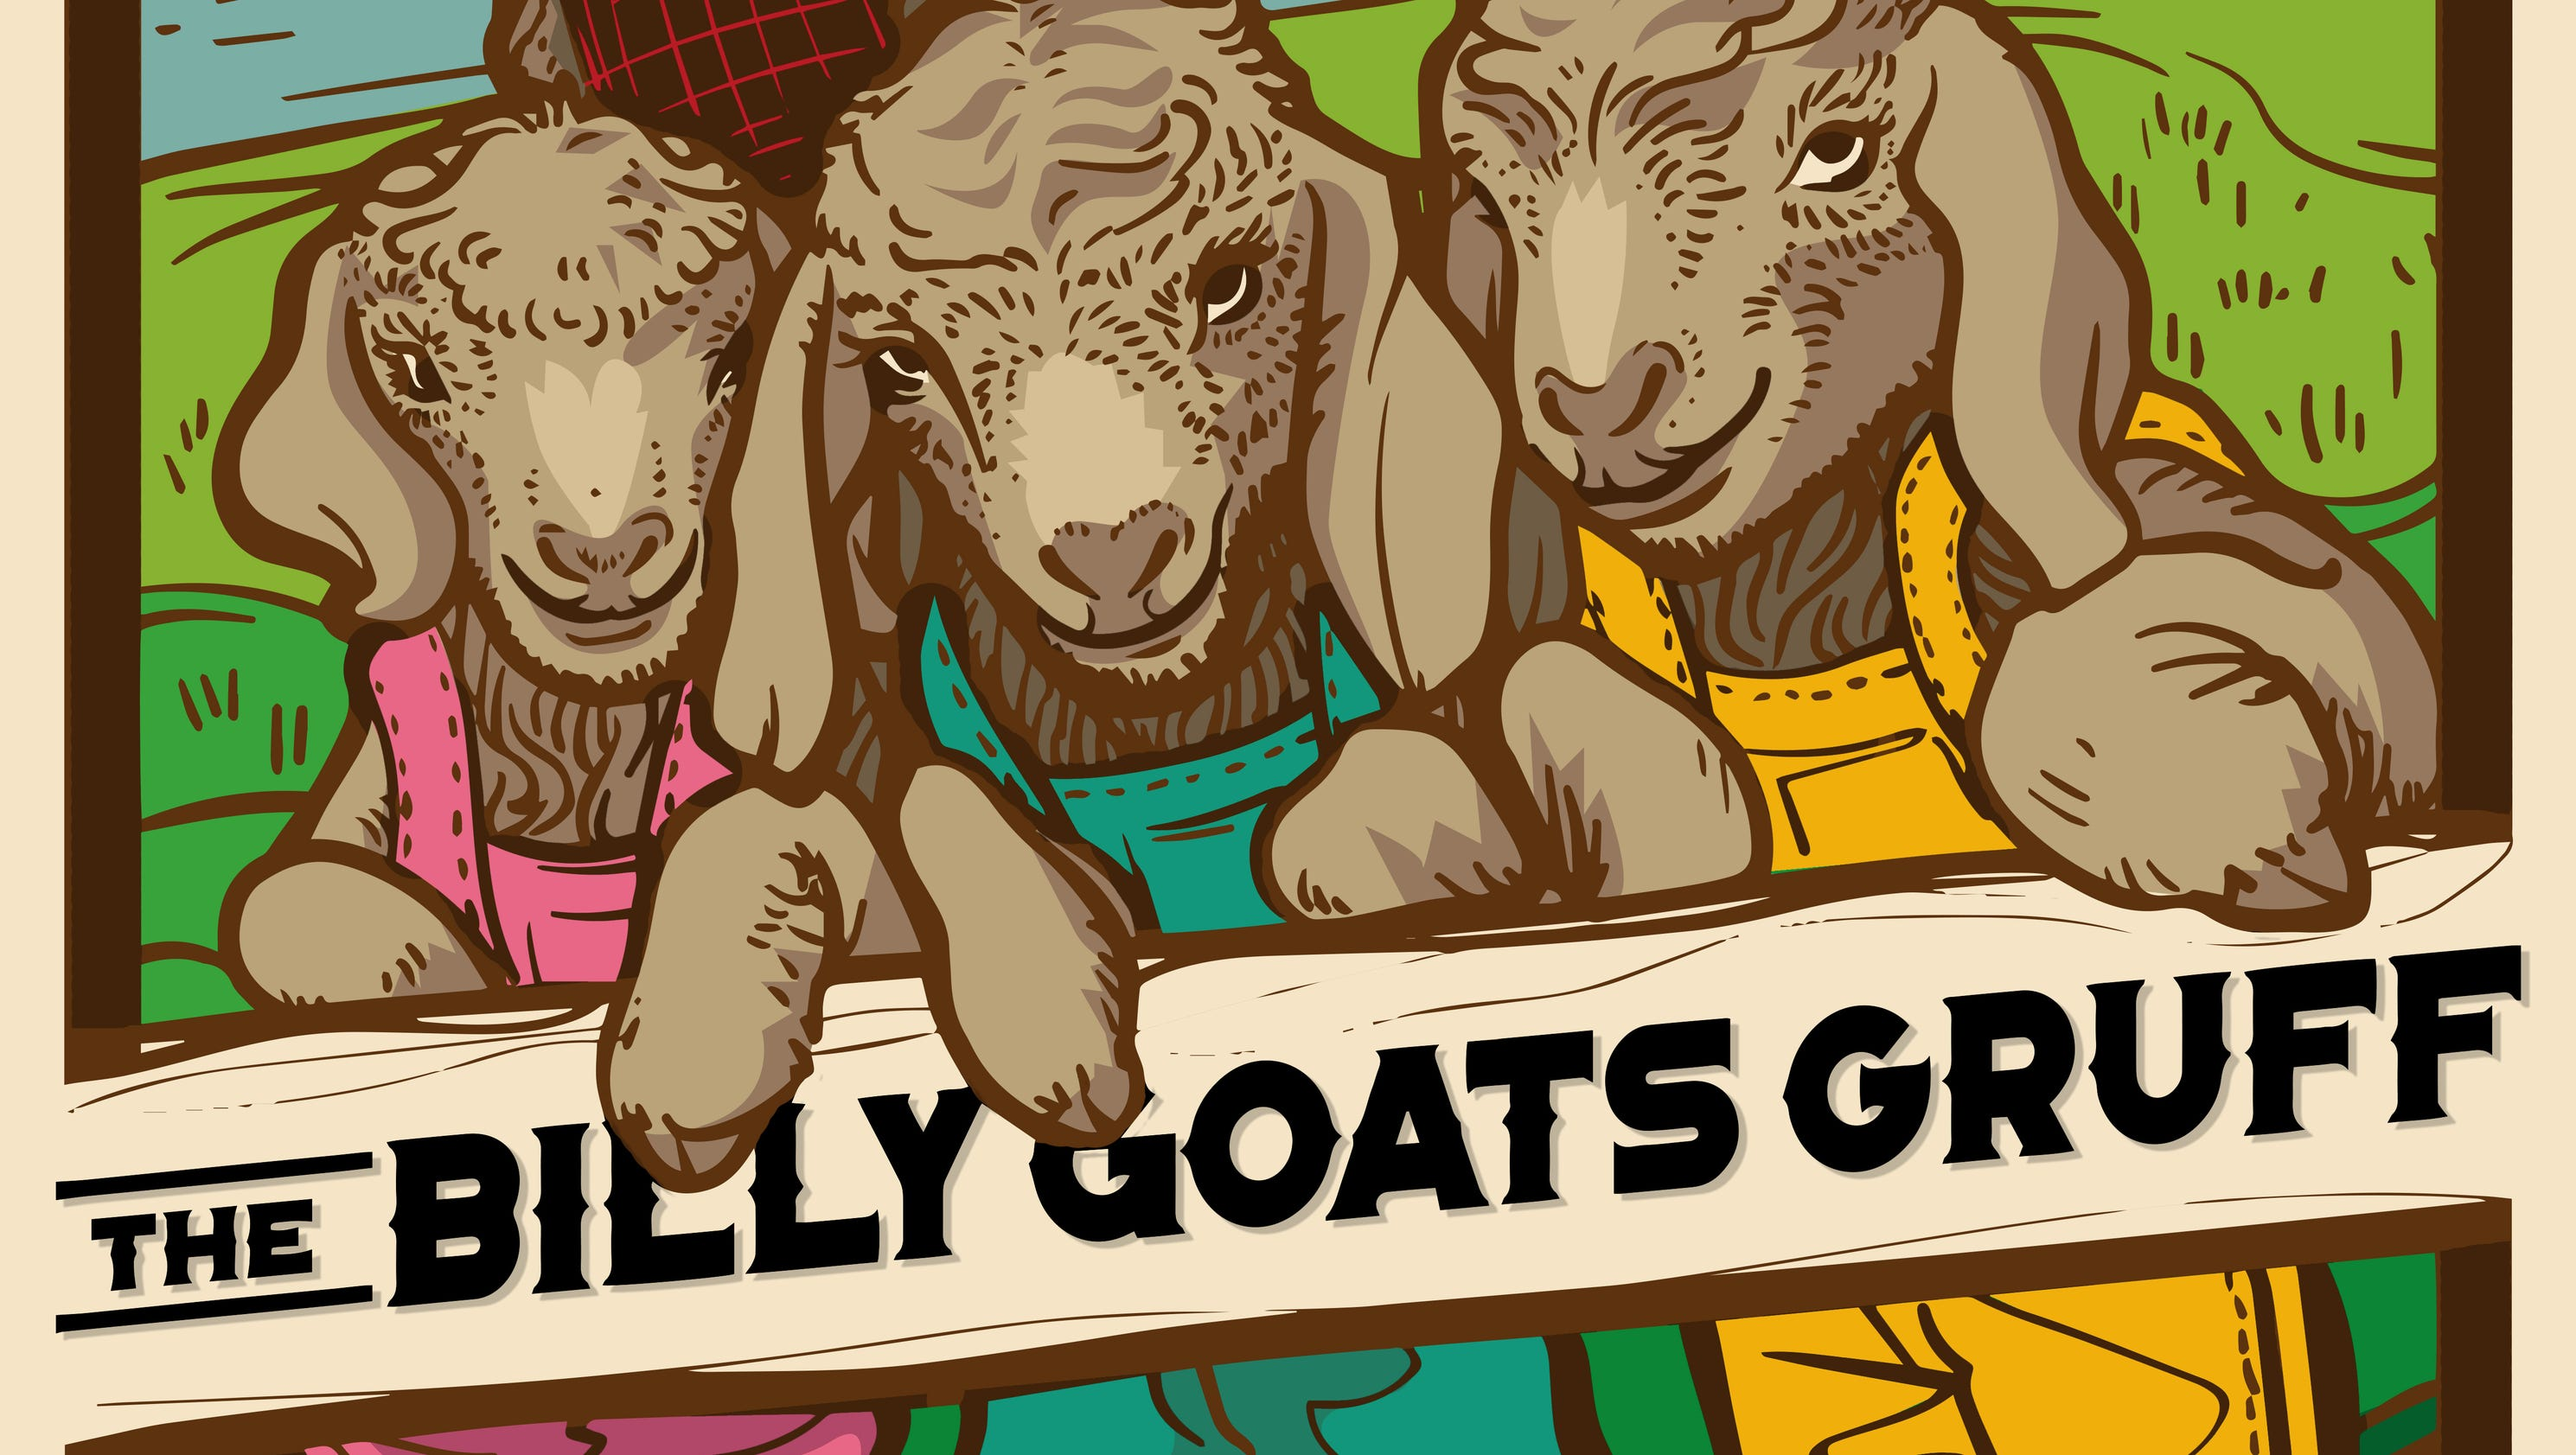 billy goats gruff teaches that opera and kindness can be contagious